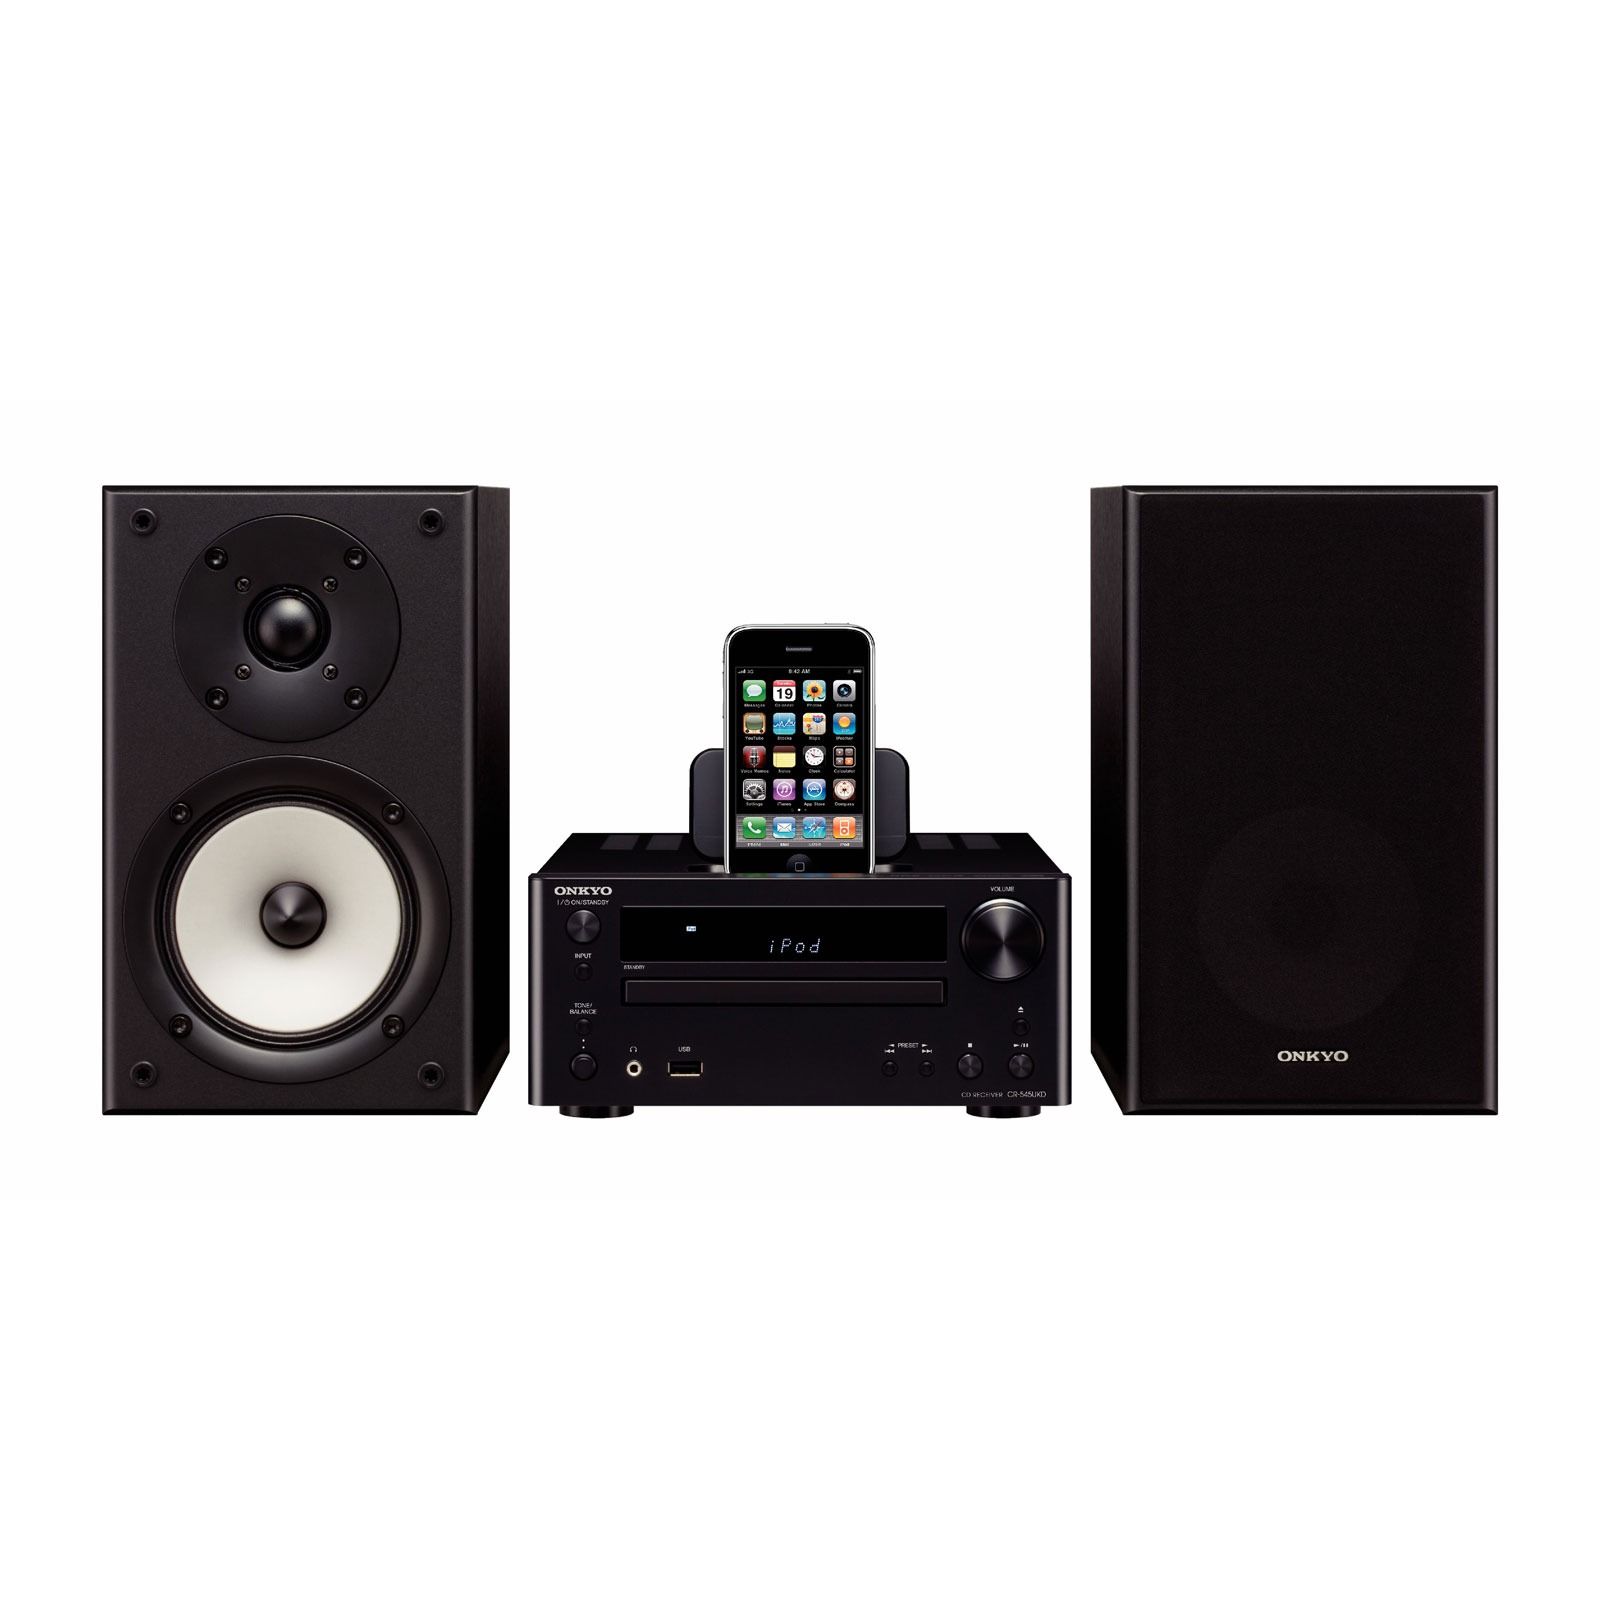 onkyo cs 545 noir cha ne hifi onkyo sur ldlc. Black Bedroom Furniture Sets. Home Design Ideas